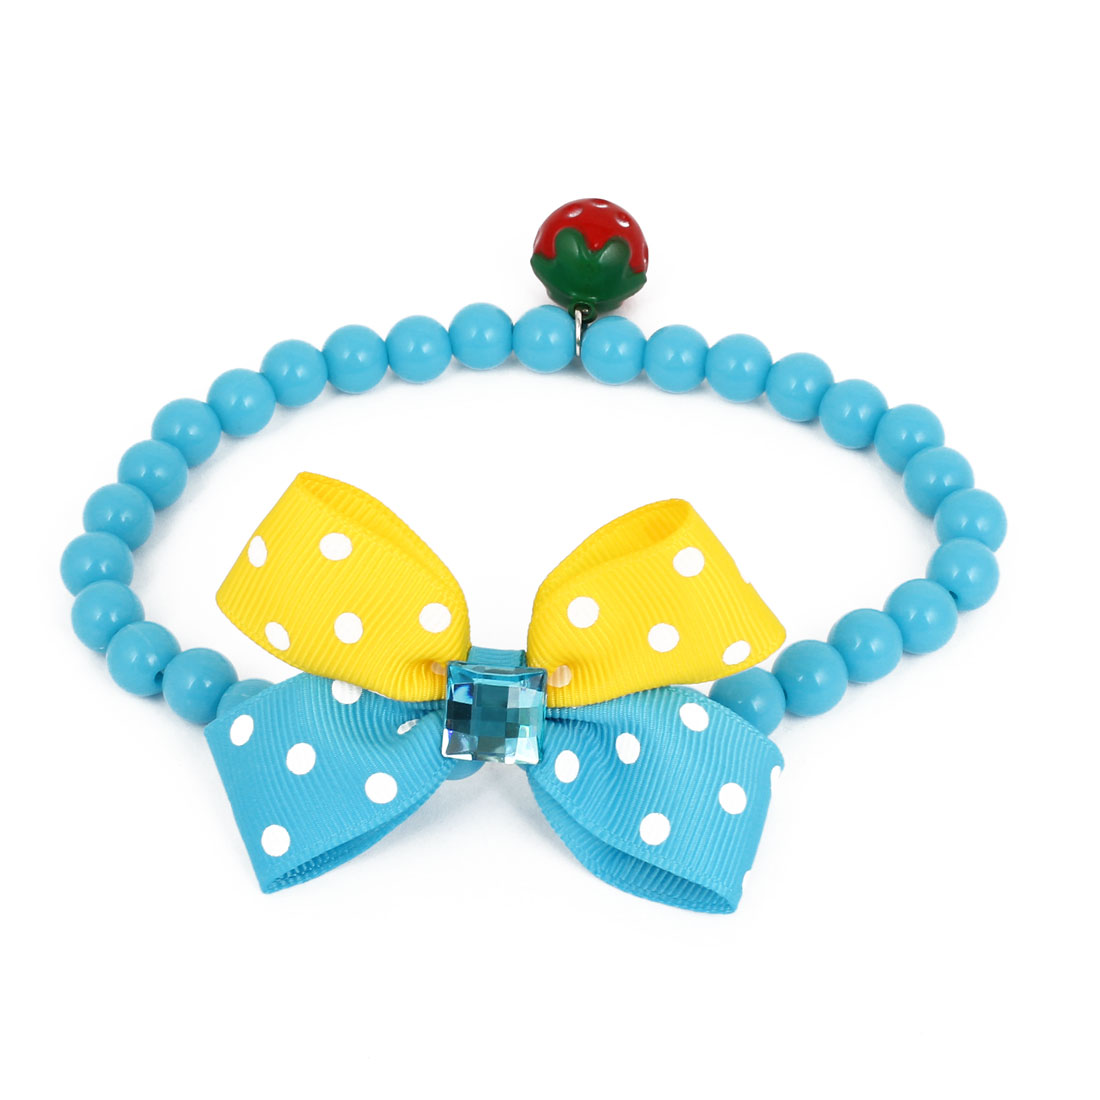 Metal Bell Pendant Bowtie Accent Pet Dog Plastic Round Beads Collar Necklace Blue M